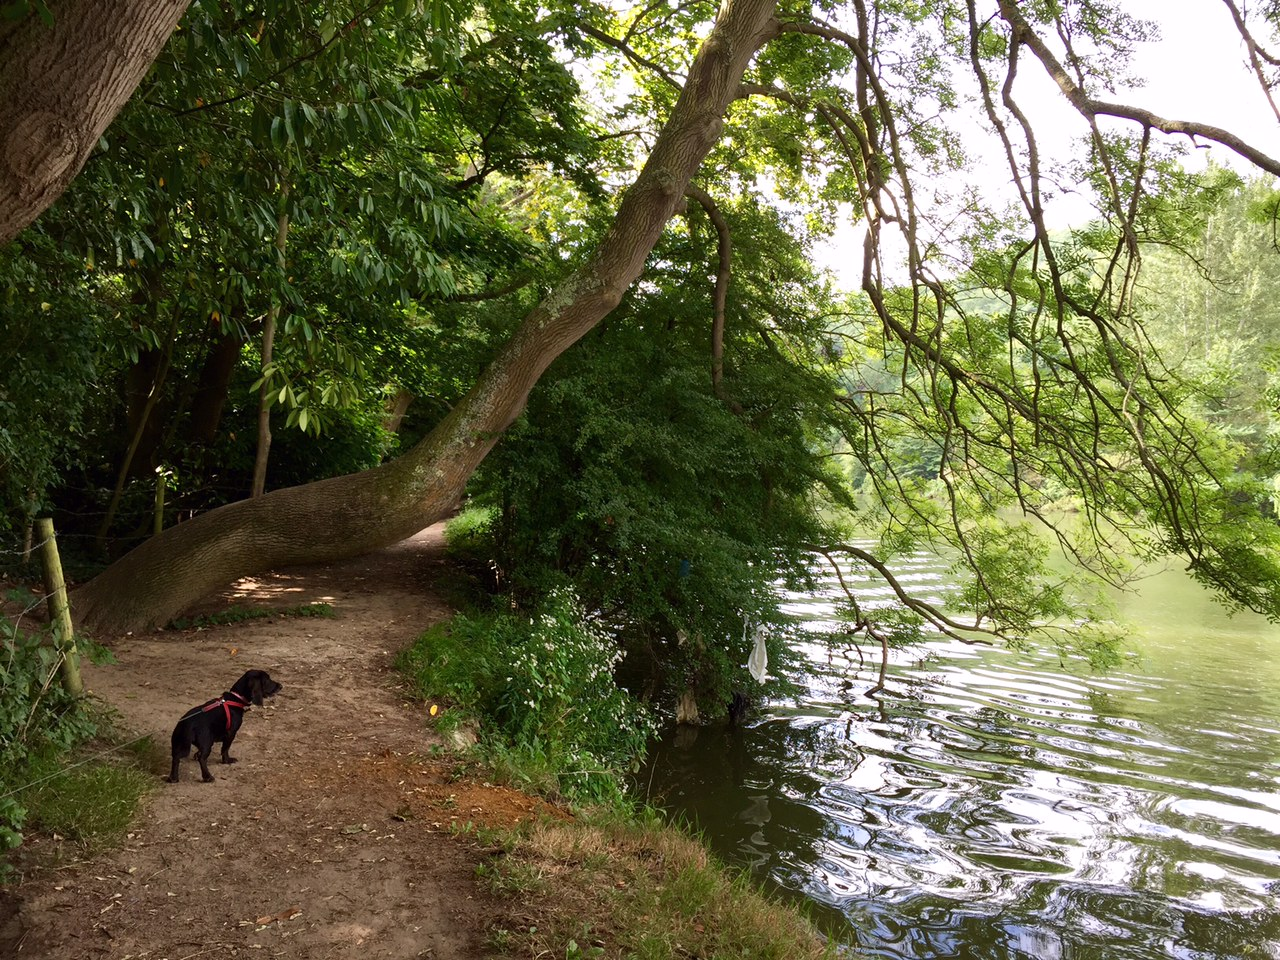 The Thames Path at Goring